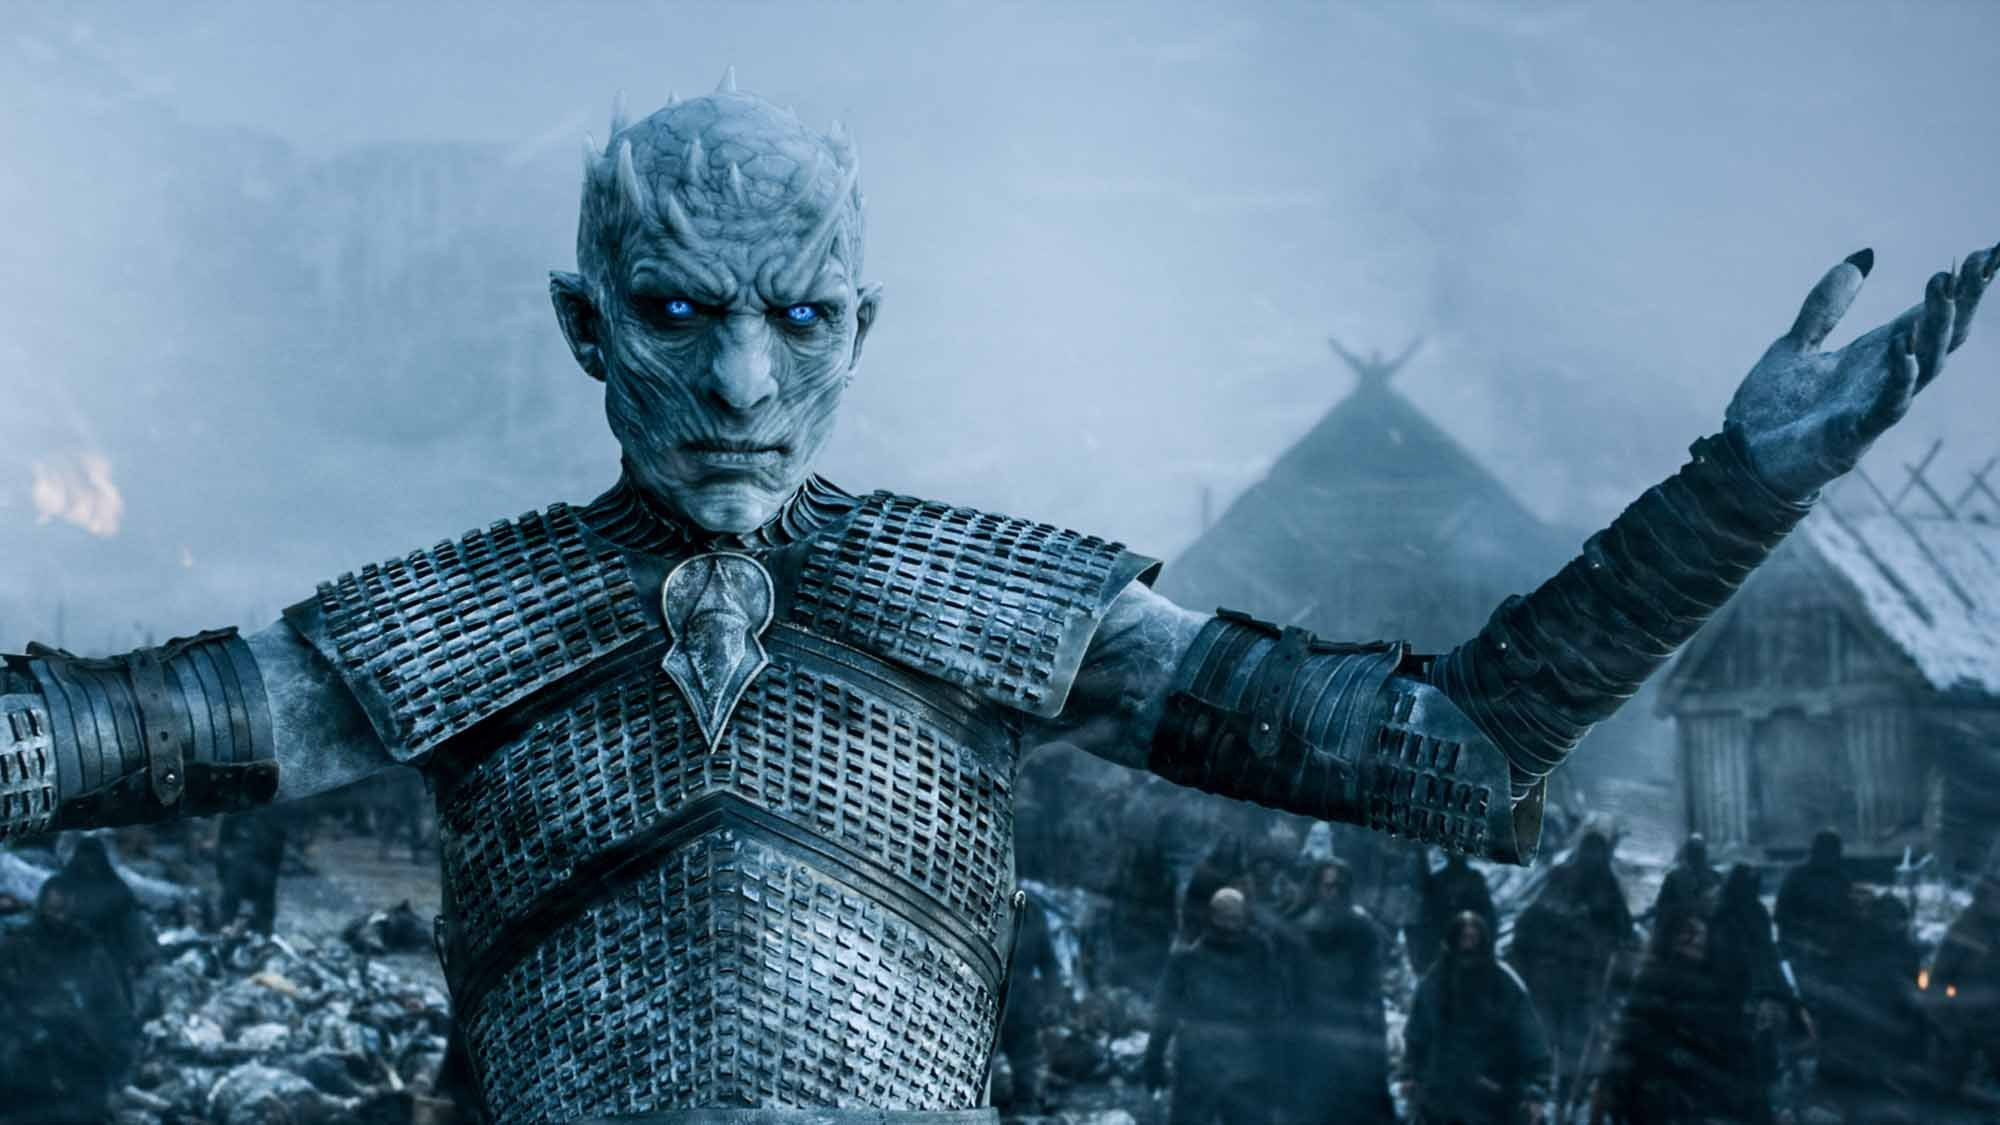 night_king_white_walker_hardhome_game_of_thrones_hbojpeg.jpg